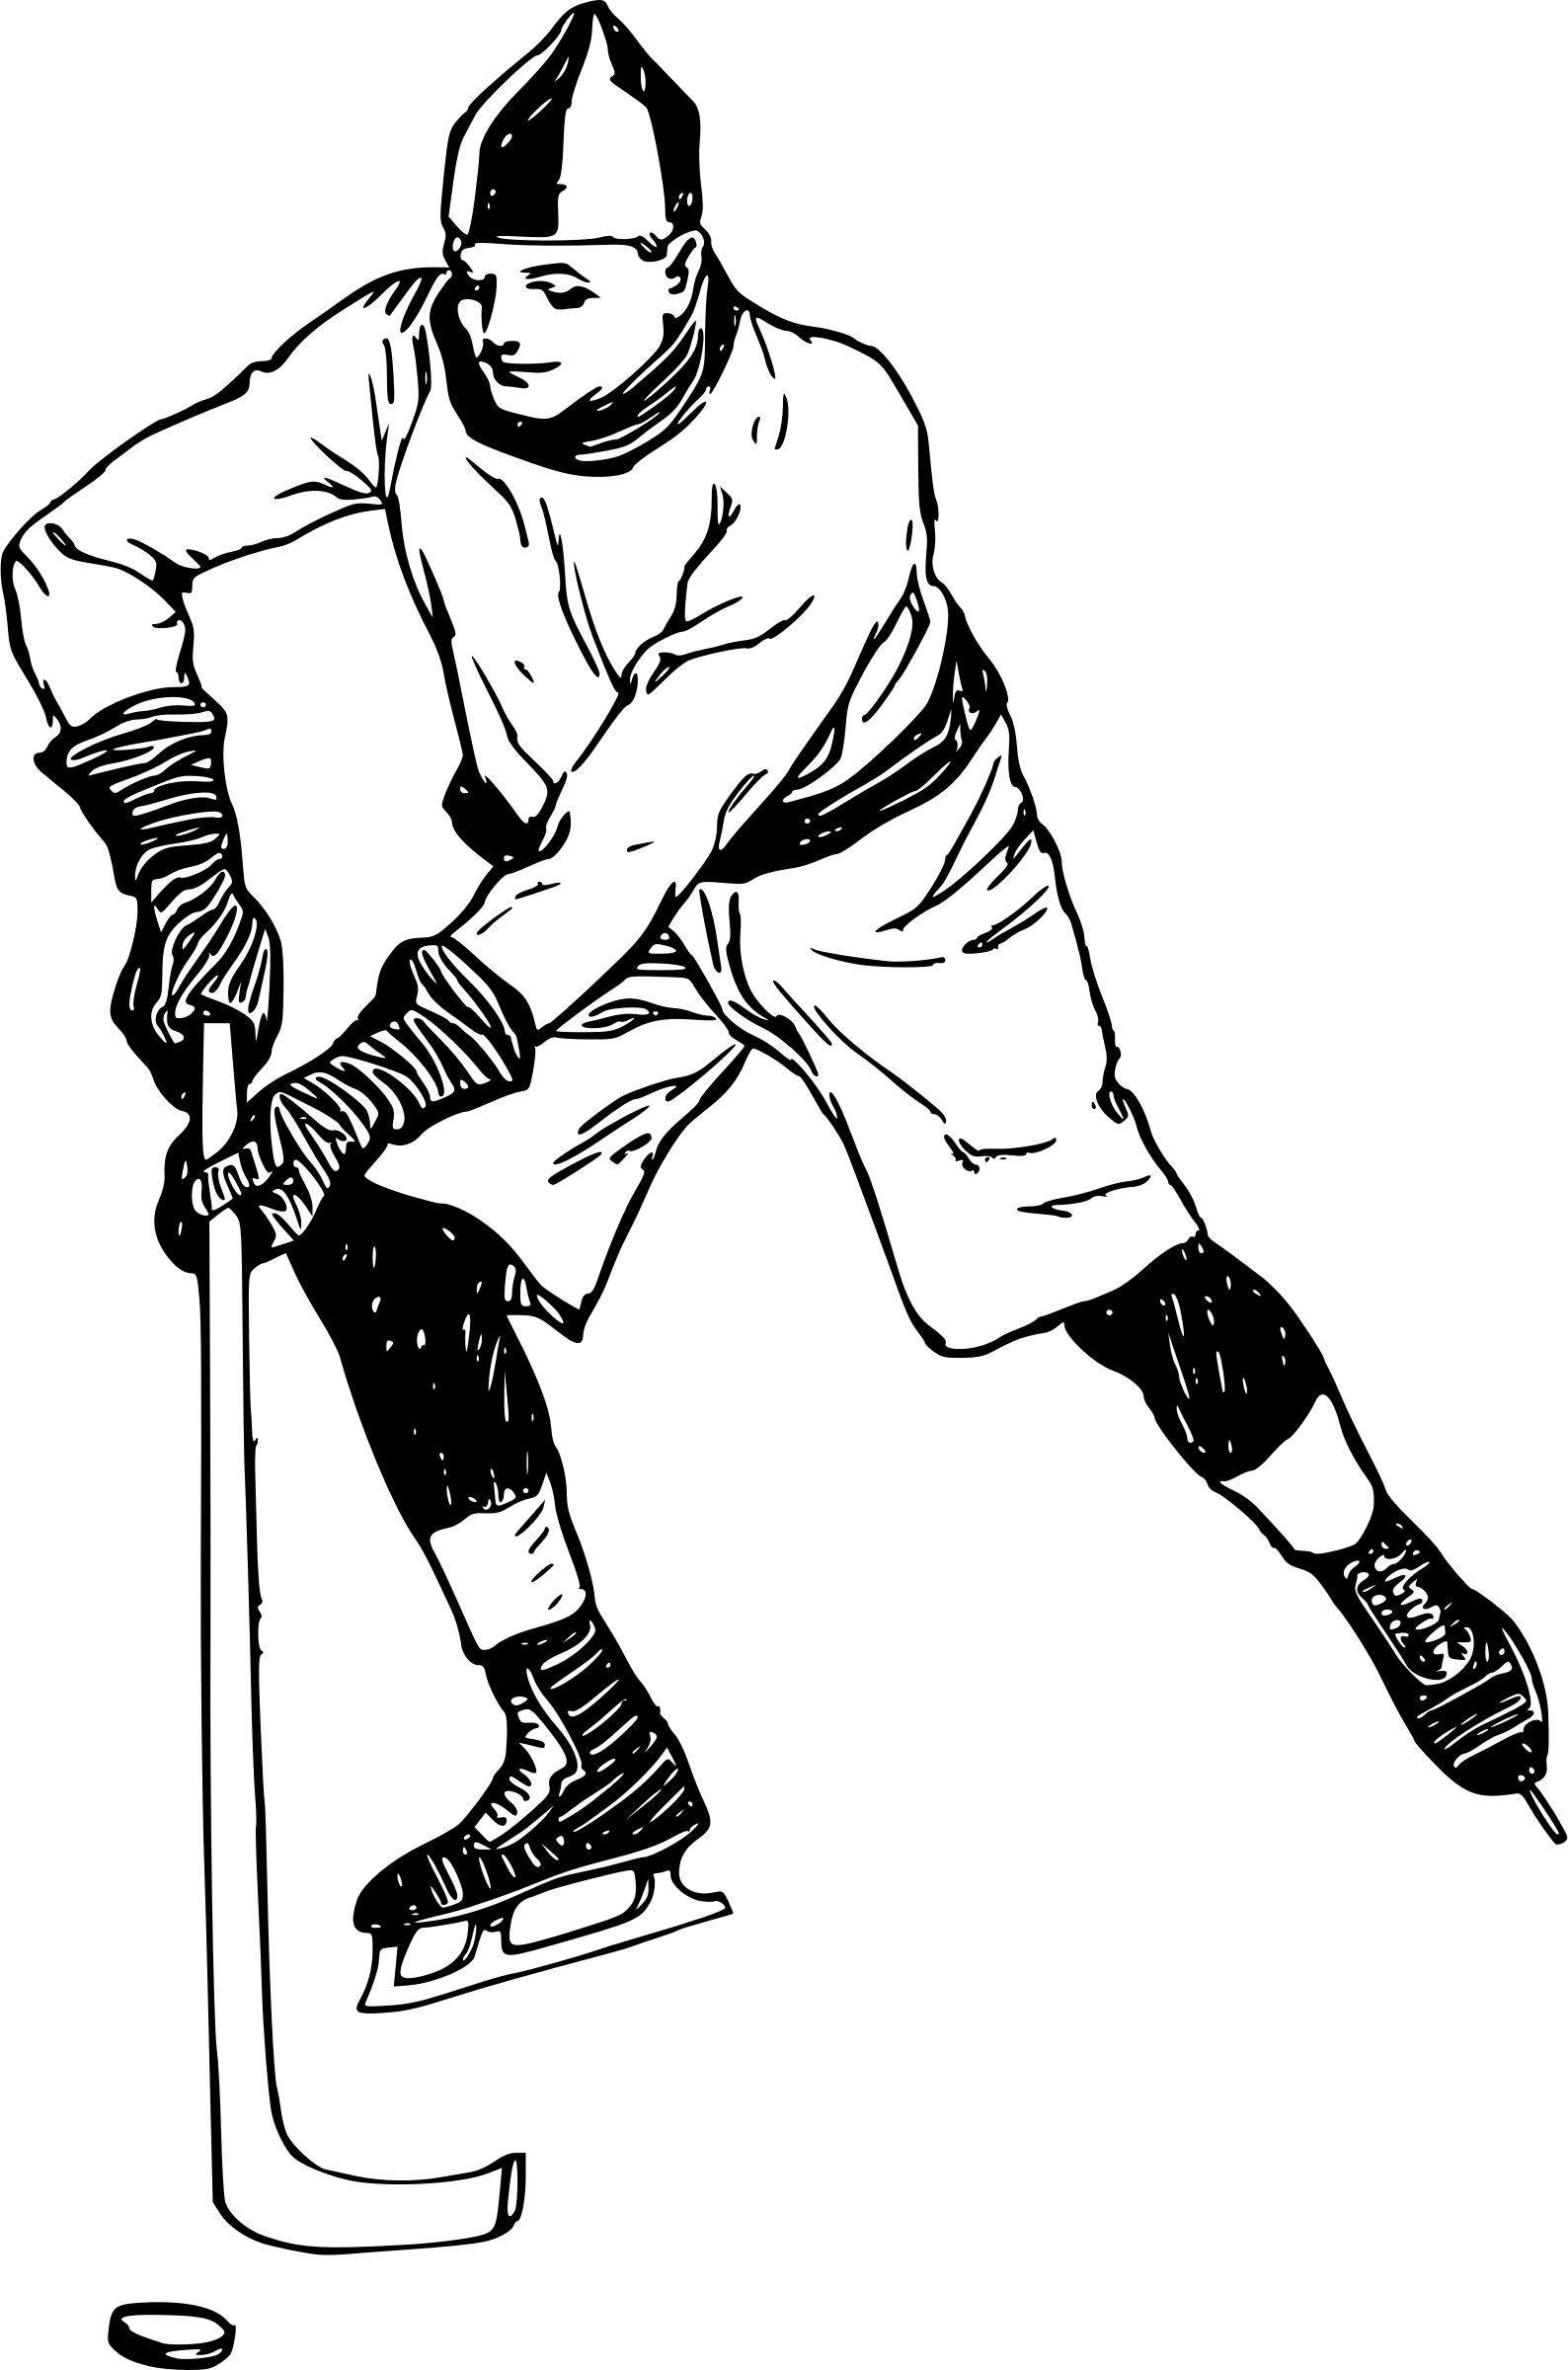 Ice Hockey Player Vector Clipart Image